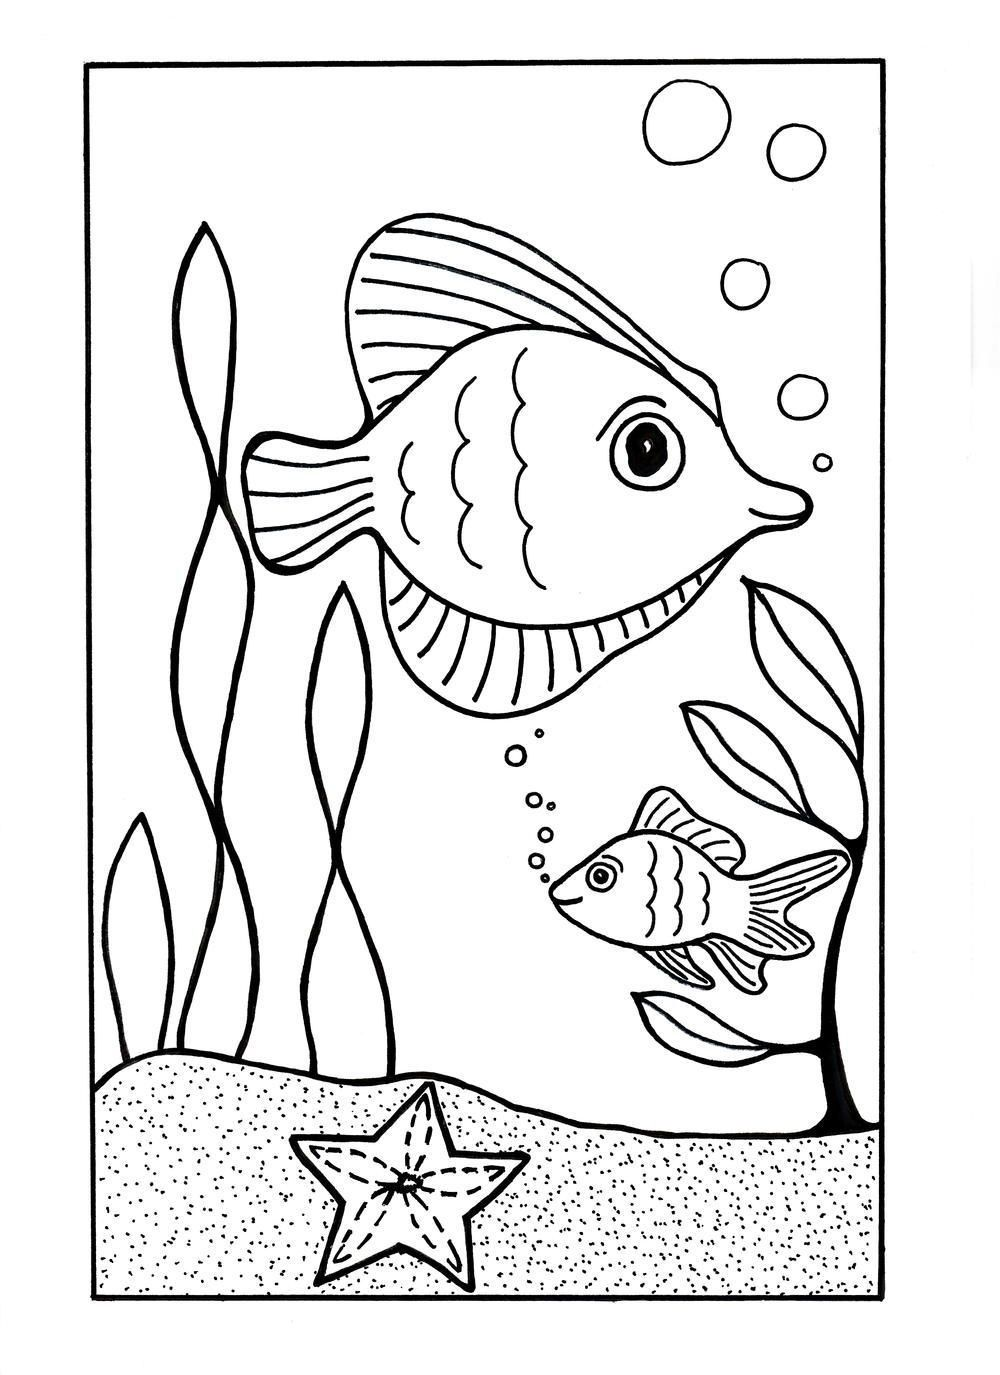 Dltk Coloring Pages For Summer - Coloring Pages Ideas